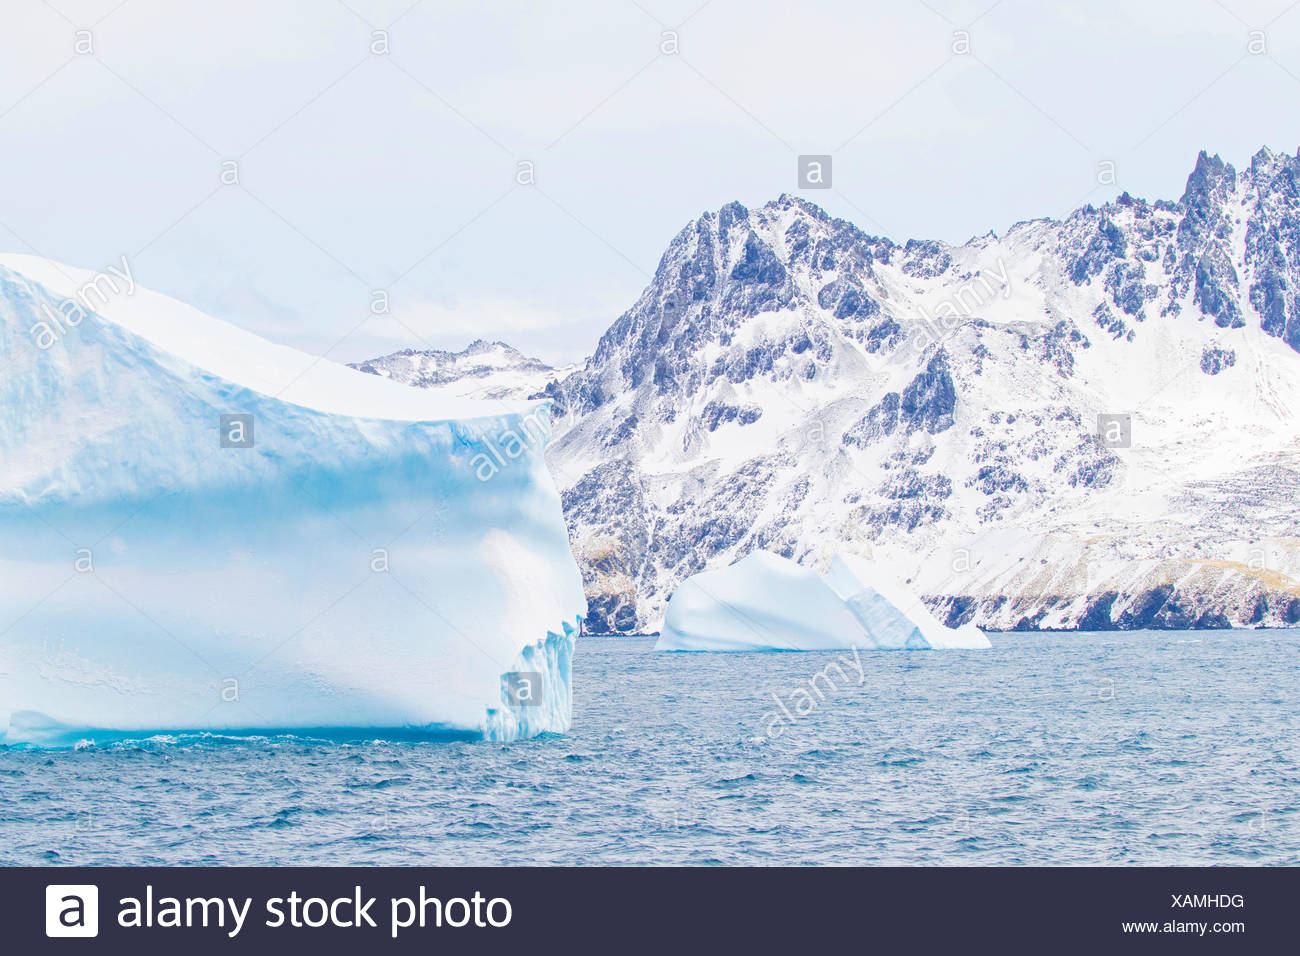 Icebergs in the South Georgia and the South Sandwich Islands Stock Photo